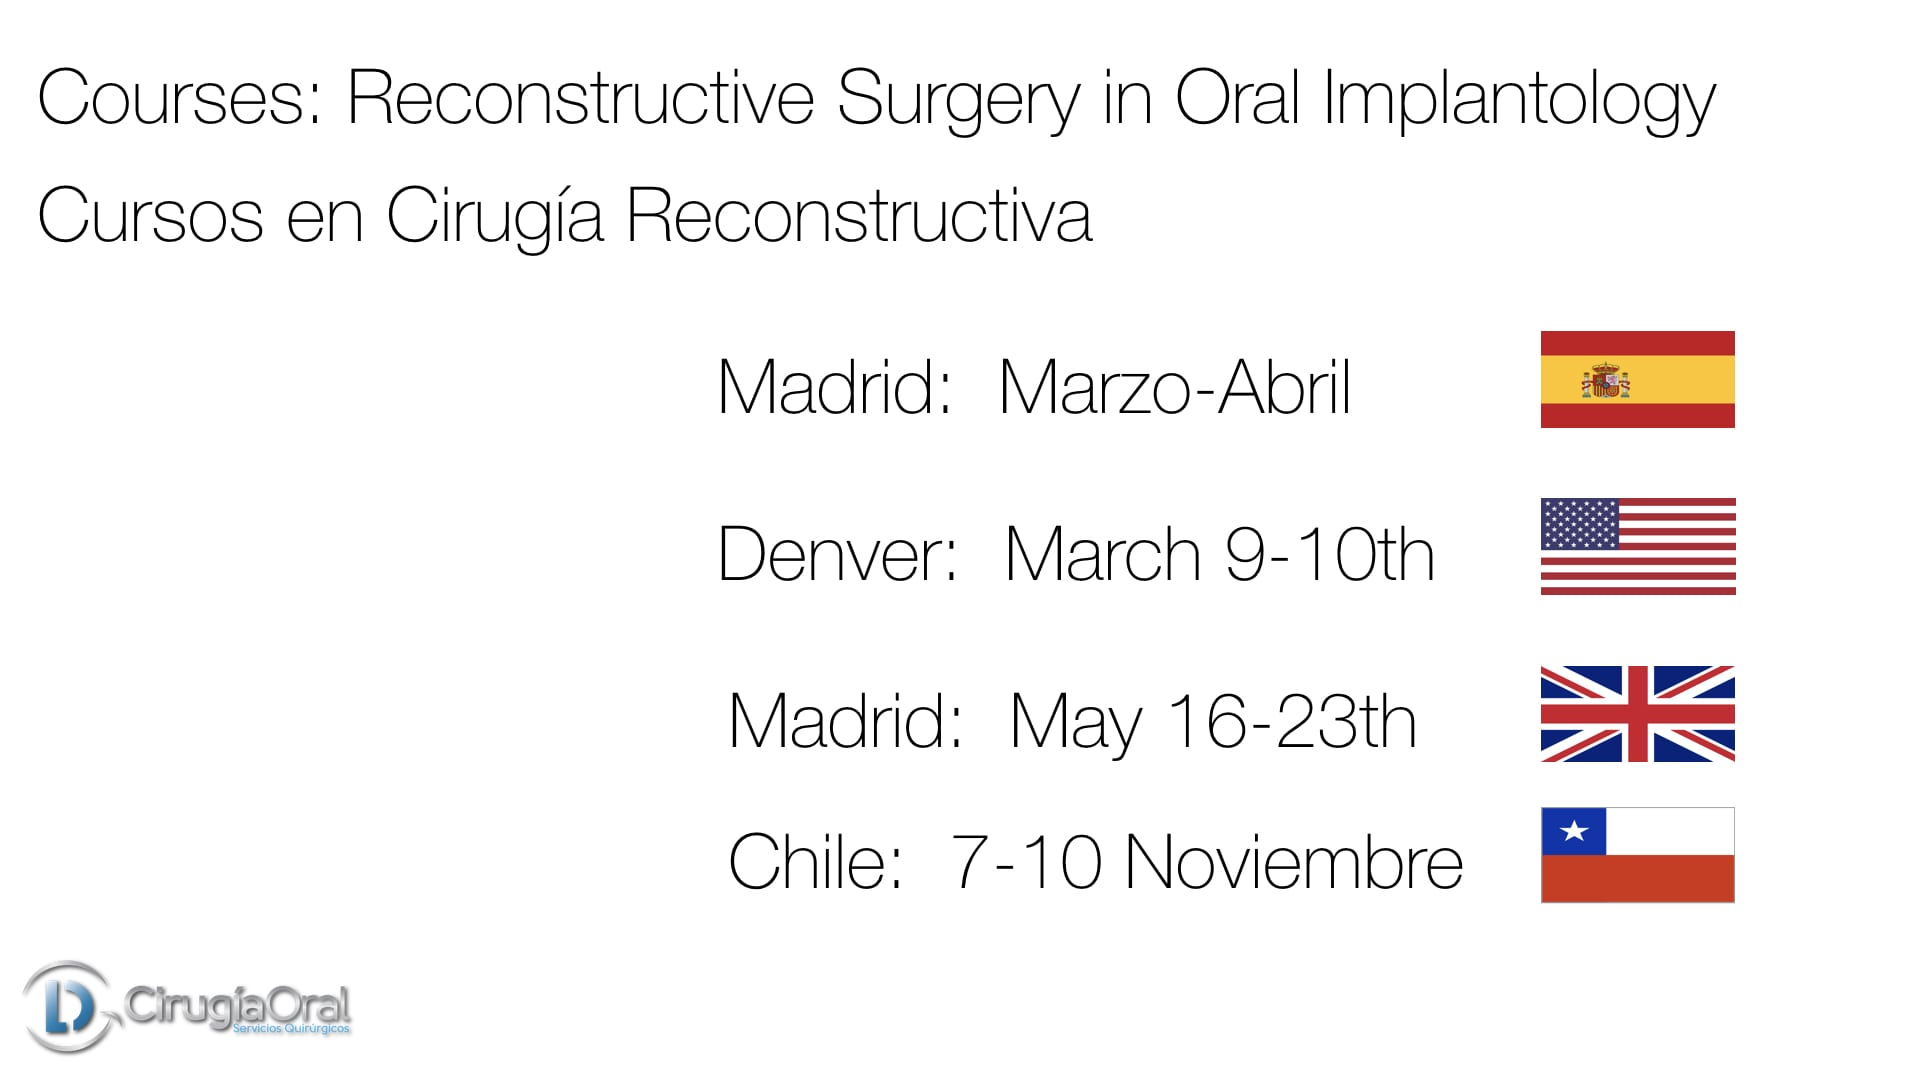 Next Courses in Bone Reconstructive Surgery